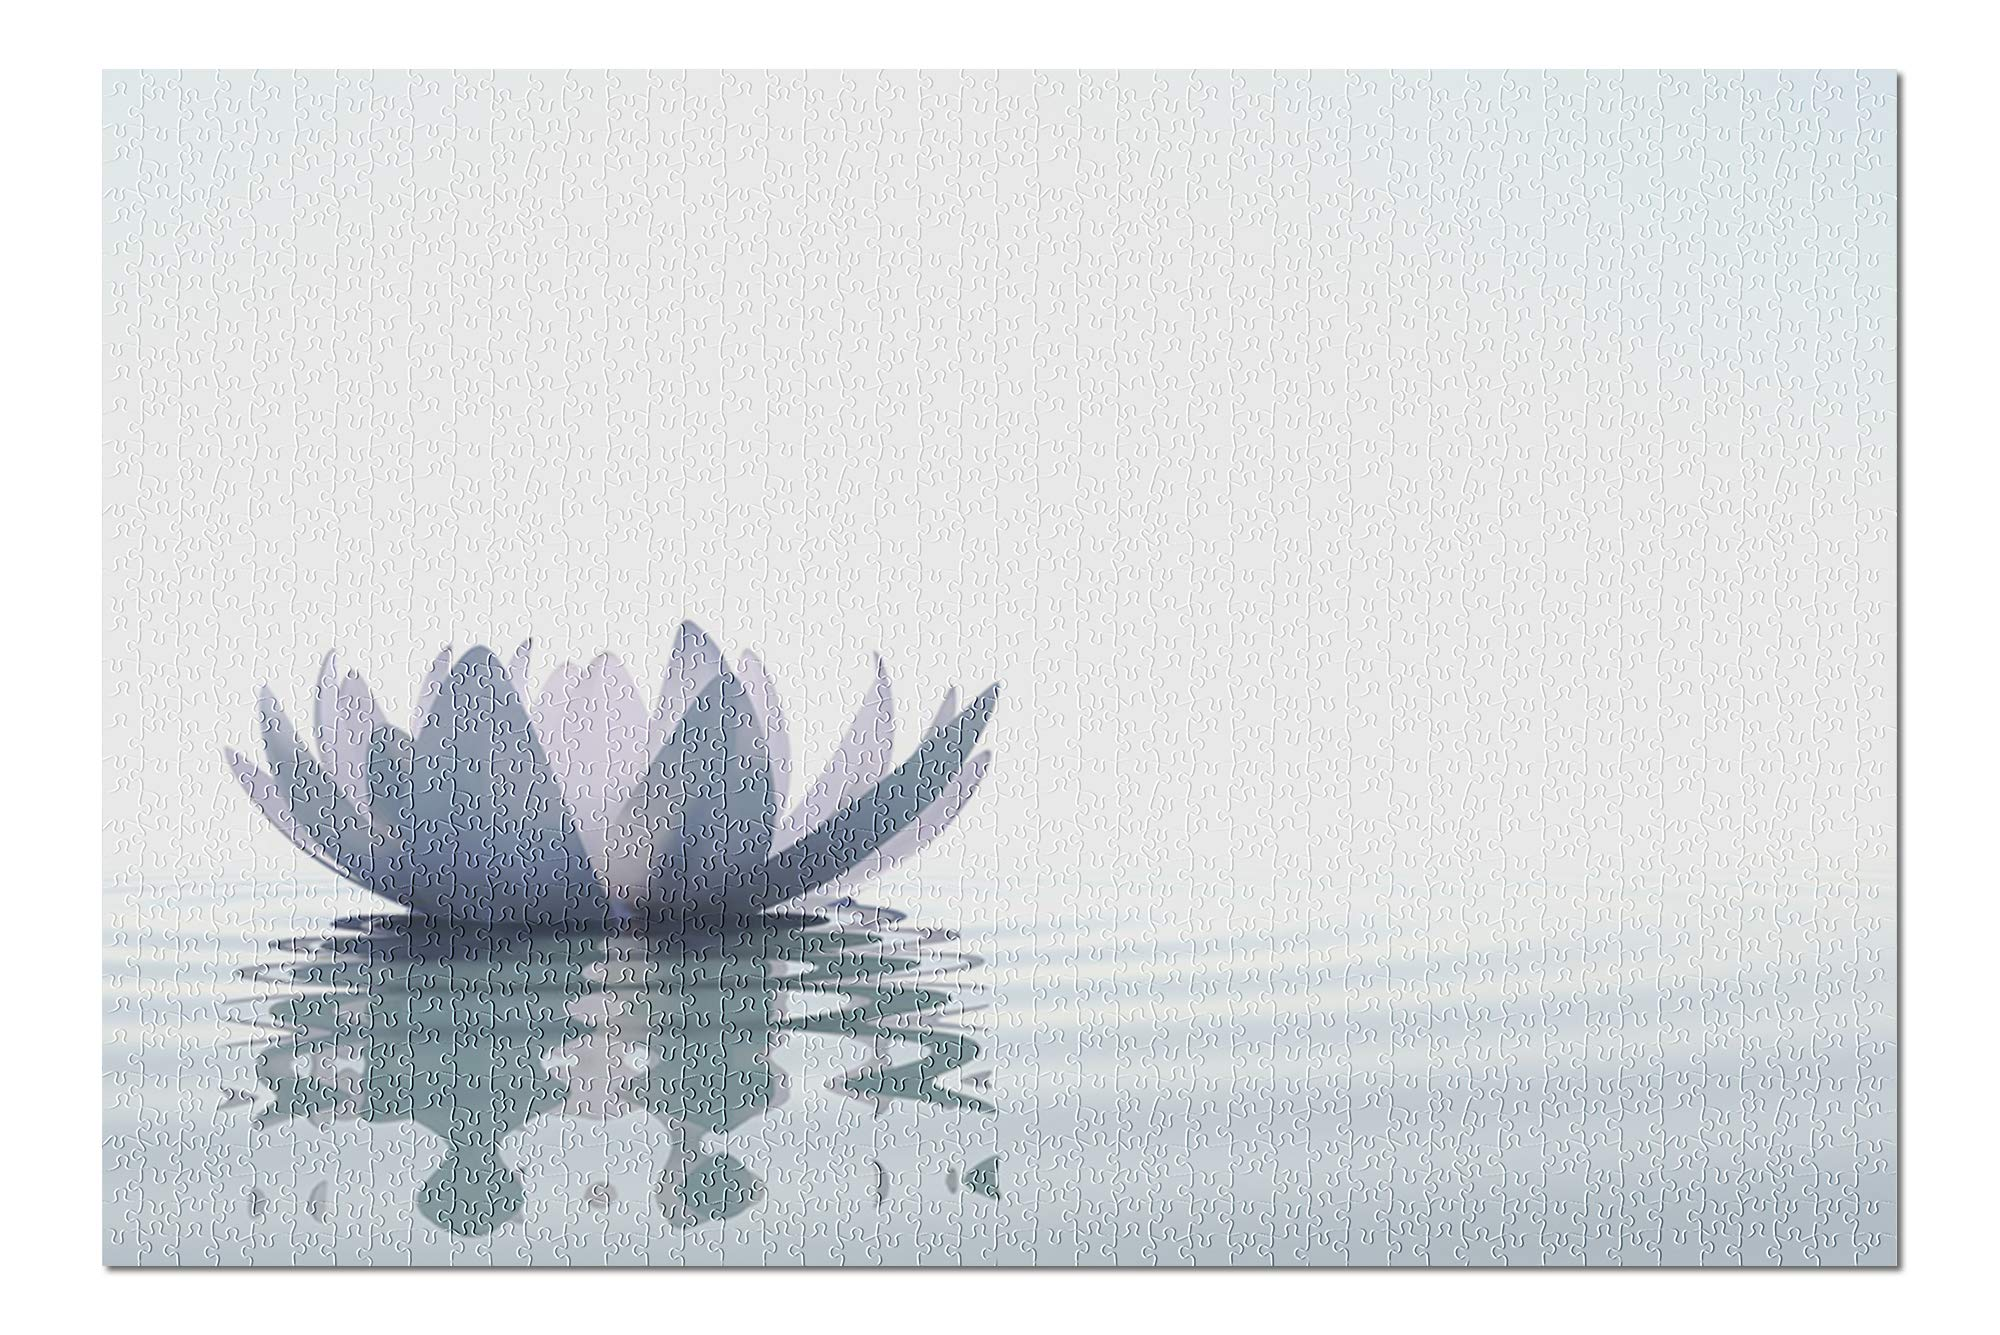 Zen Lotus Flower in Water 9000030 (Premium 1000 Piece Jigsaw Puzzle for Adults, 20x30, Made in USA!)